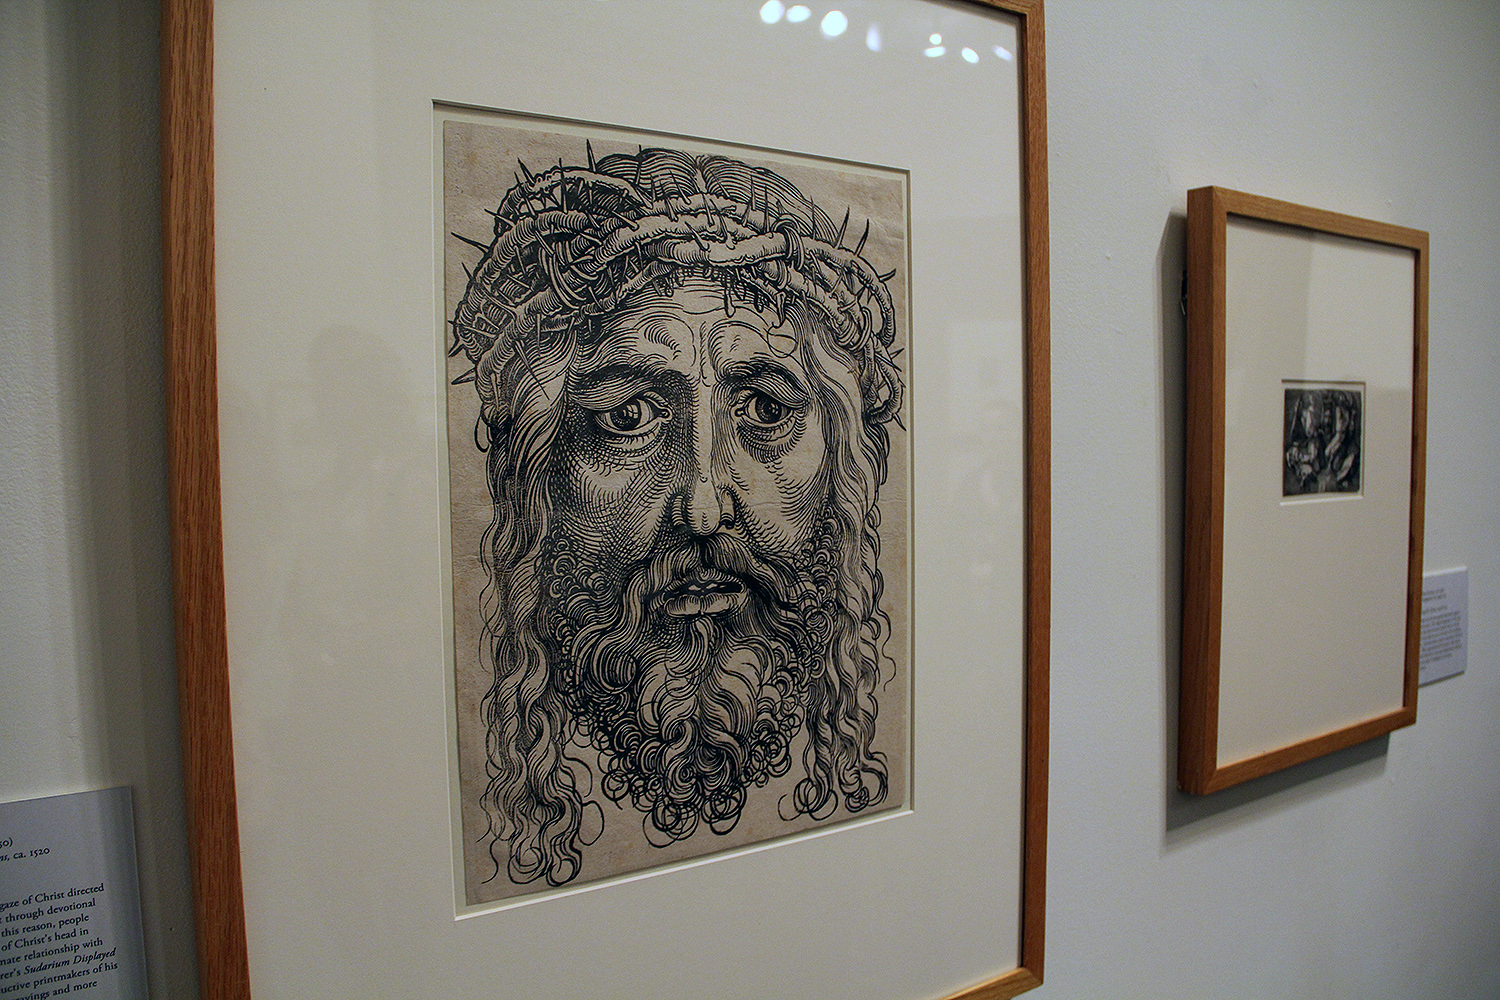 "Hans Sebald Beham (German, 1500-1550) created this woodcut of ""The Head of Christ Crowned with Thorns"" in 1520. At the time, people hung this larger-than-life-sized image of Christ's head in their private shrines and built an intimate relationship with the print. Beham made about 270 engravings and more than 1,000 woodcuts during his career."